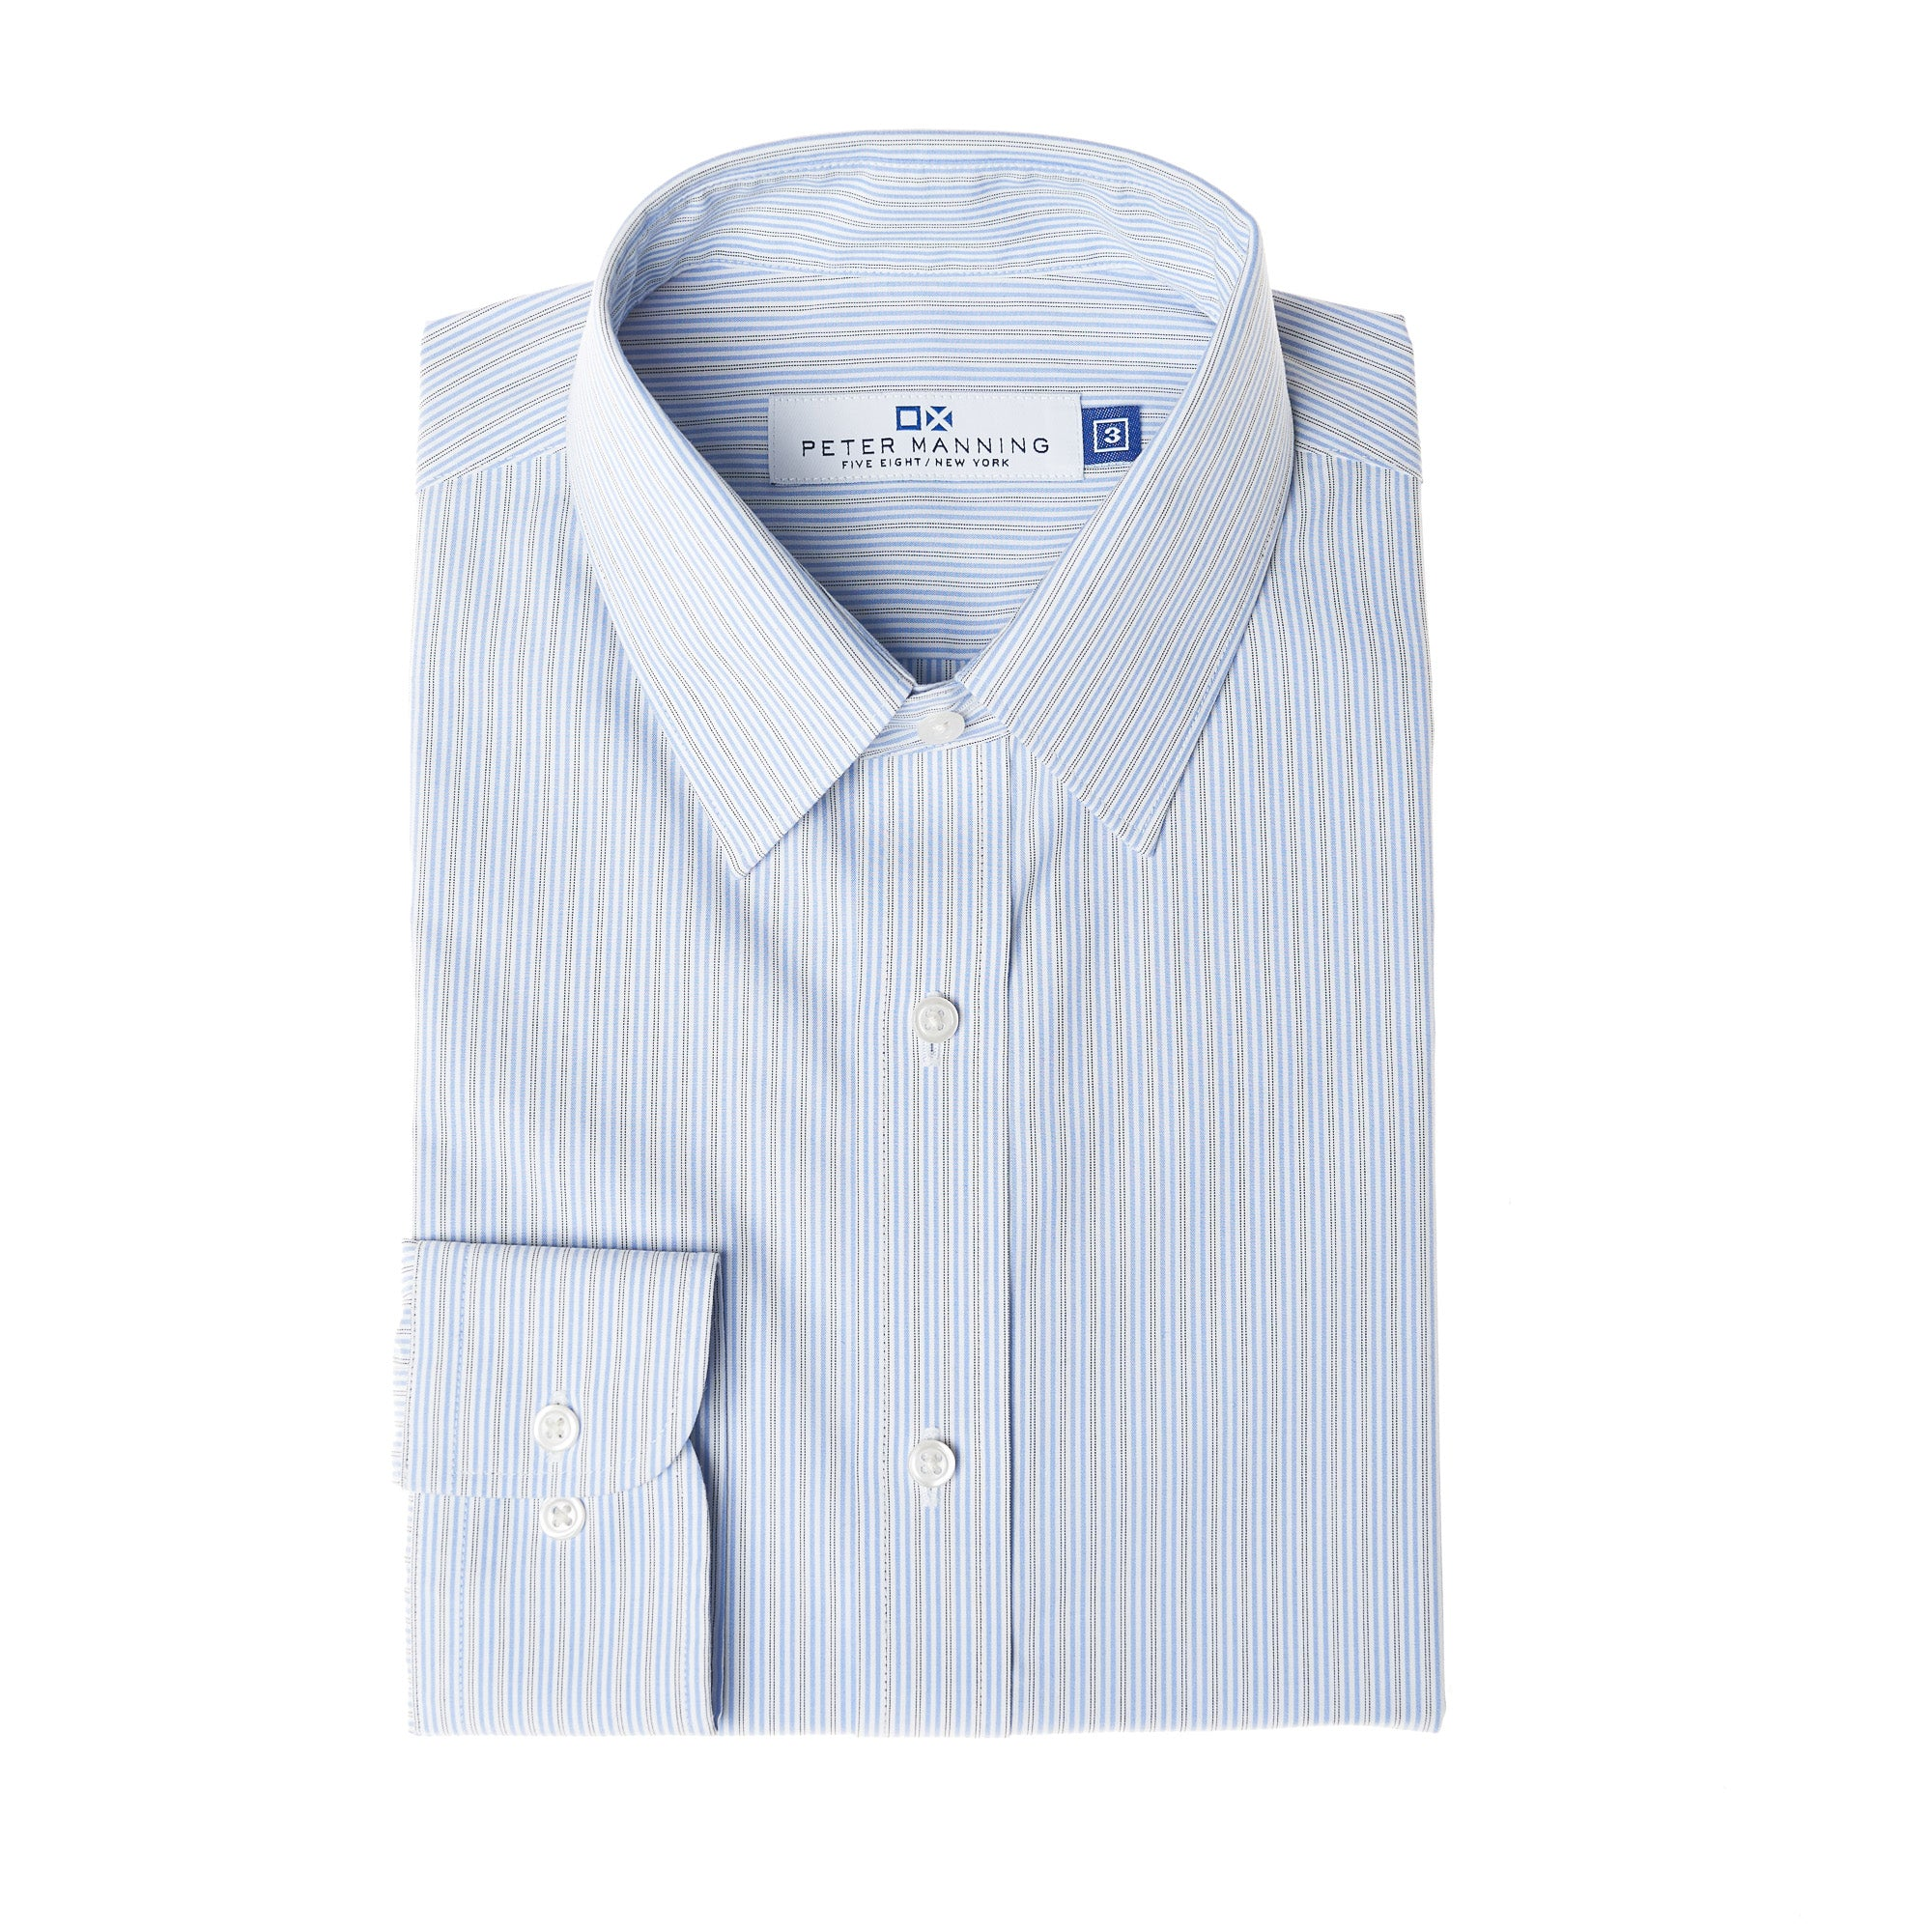 Easy Care Dress Shirt Standard Fit - Blue Pinstripe